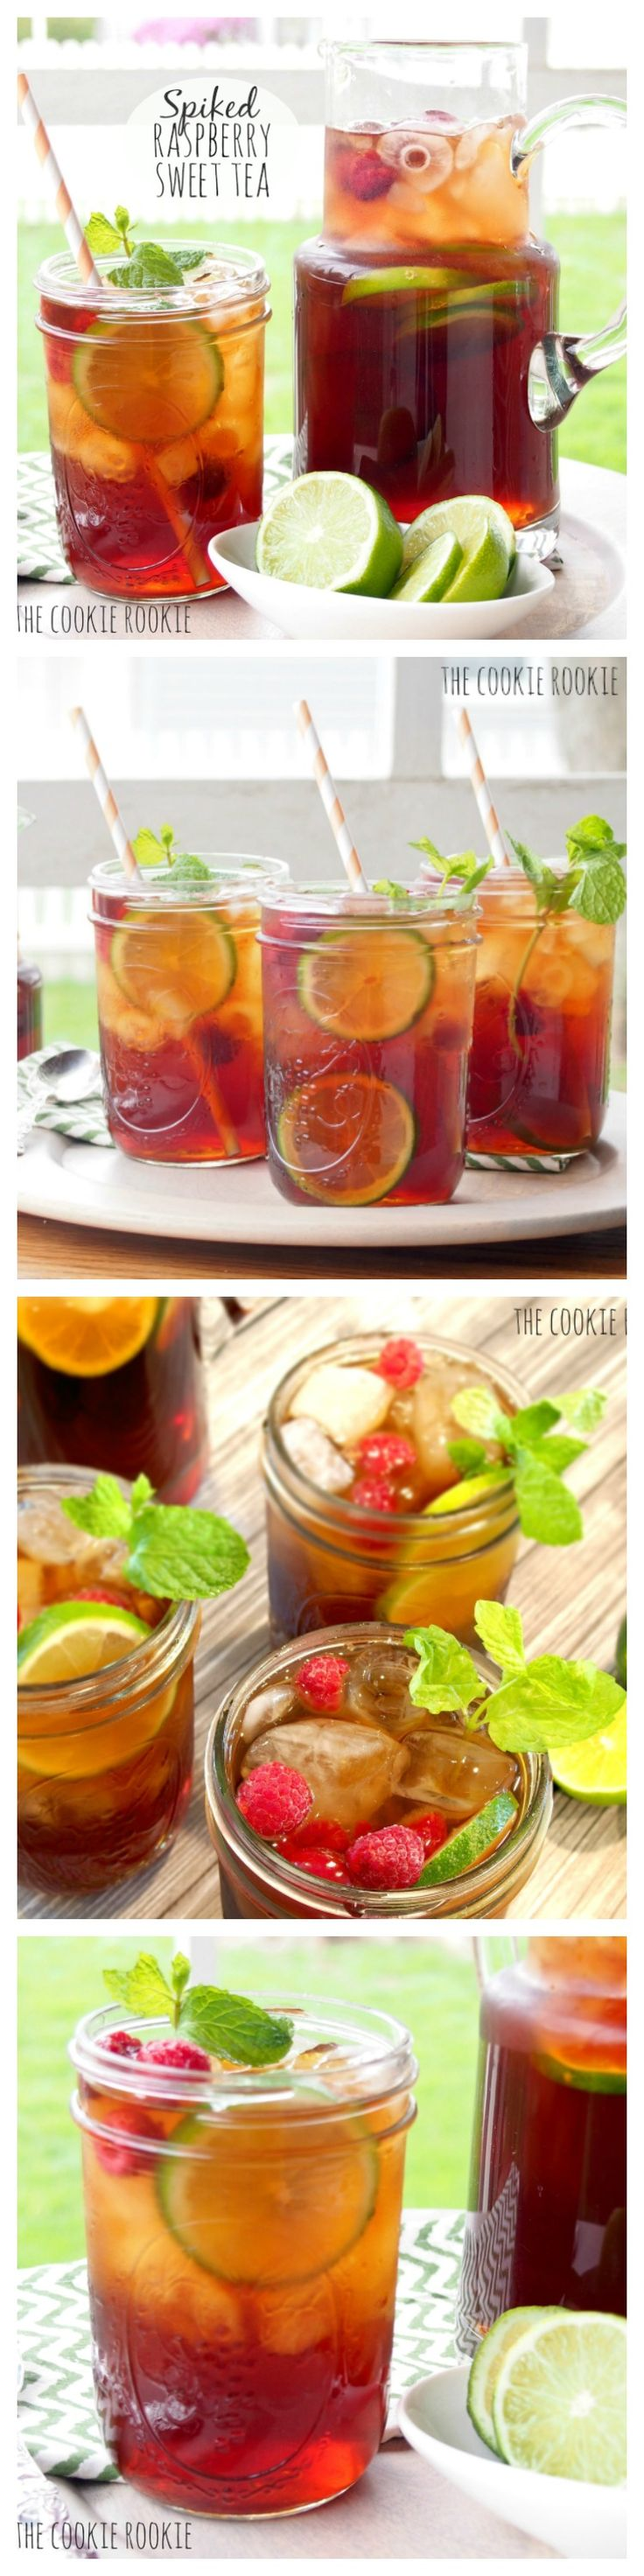 Spiked HOMEMADE Raspberry Sweet Tea is the perfect refreshing cocktail for spring and summer!